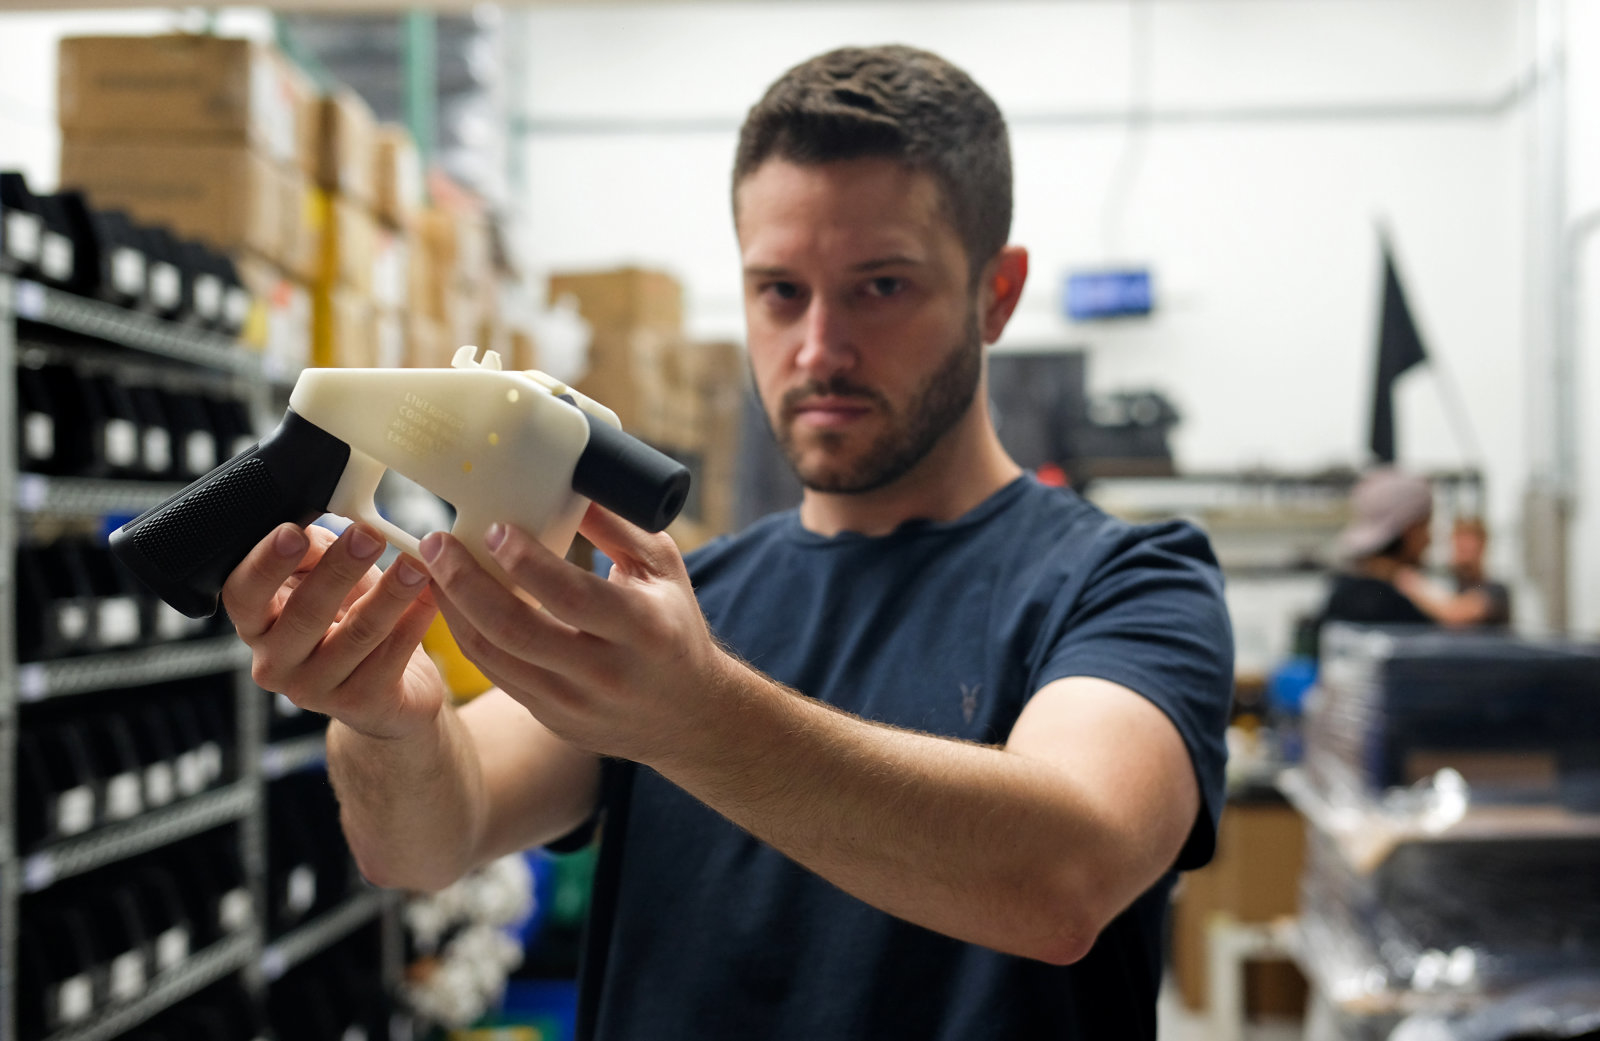 """TOPSHOT - Cody Wilson, owner of Defense Distributed company, holds a 3D printed gun, called the """"Liberator"""", in his factory in Austin, Texas on August 1, 2018. - The US """"crypto-anarchist"""" who caused panic this week by publishing online blueprints for 3D-printed firearms said Wednesday that whatever the outcome of a legal battle, he has already succeeded in his political goal of spreading the designs far and wide. A federal court judge blocked Texan Cody Wilson's website on Tuesday, July 31, 2018, by issuing a temporary injunction. (Photo by Kelly WEST / AFP)        (Photo credit should read KELLY WEST/AFP/Getty Images)"""